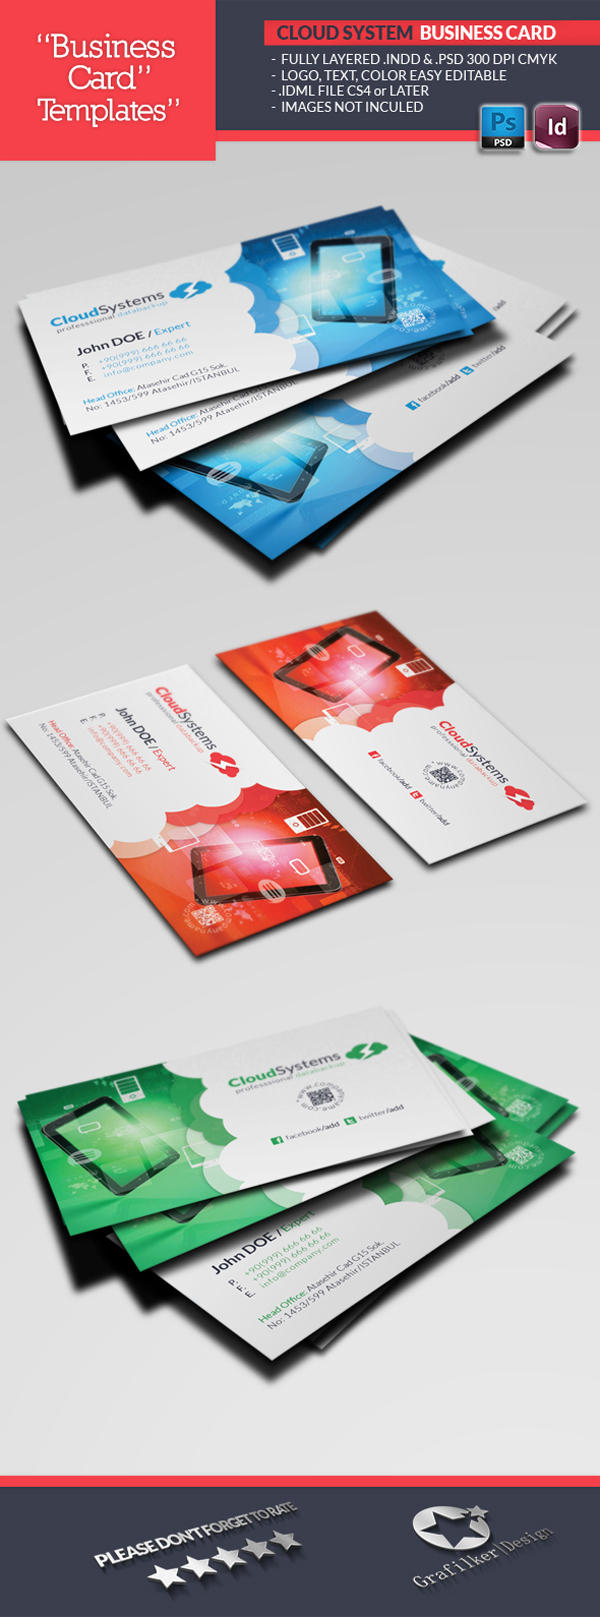 Professional Business Card Templates by grafilker on Envato Studio